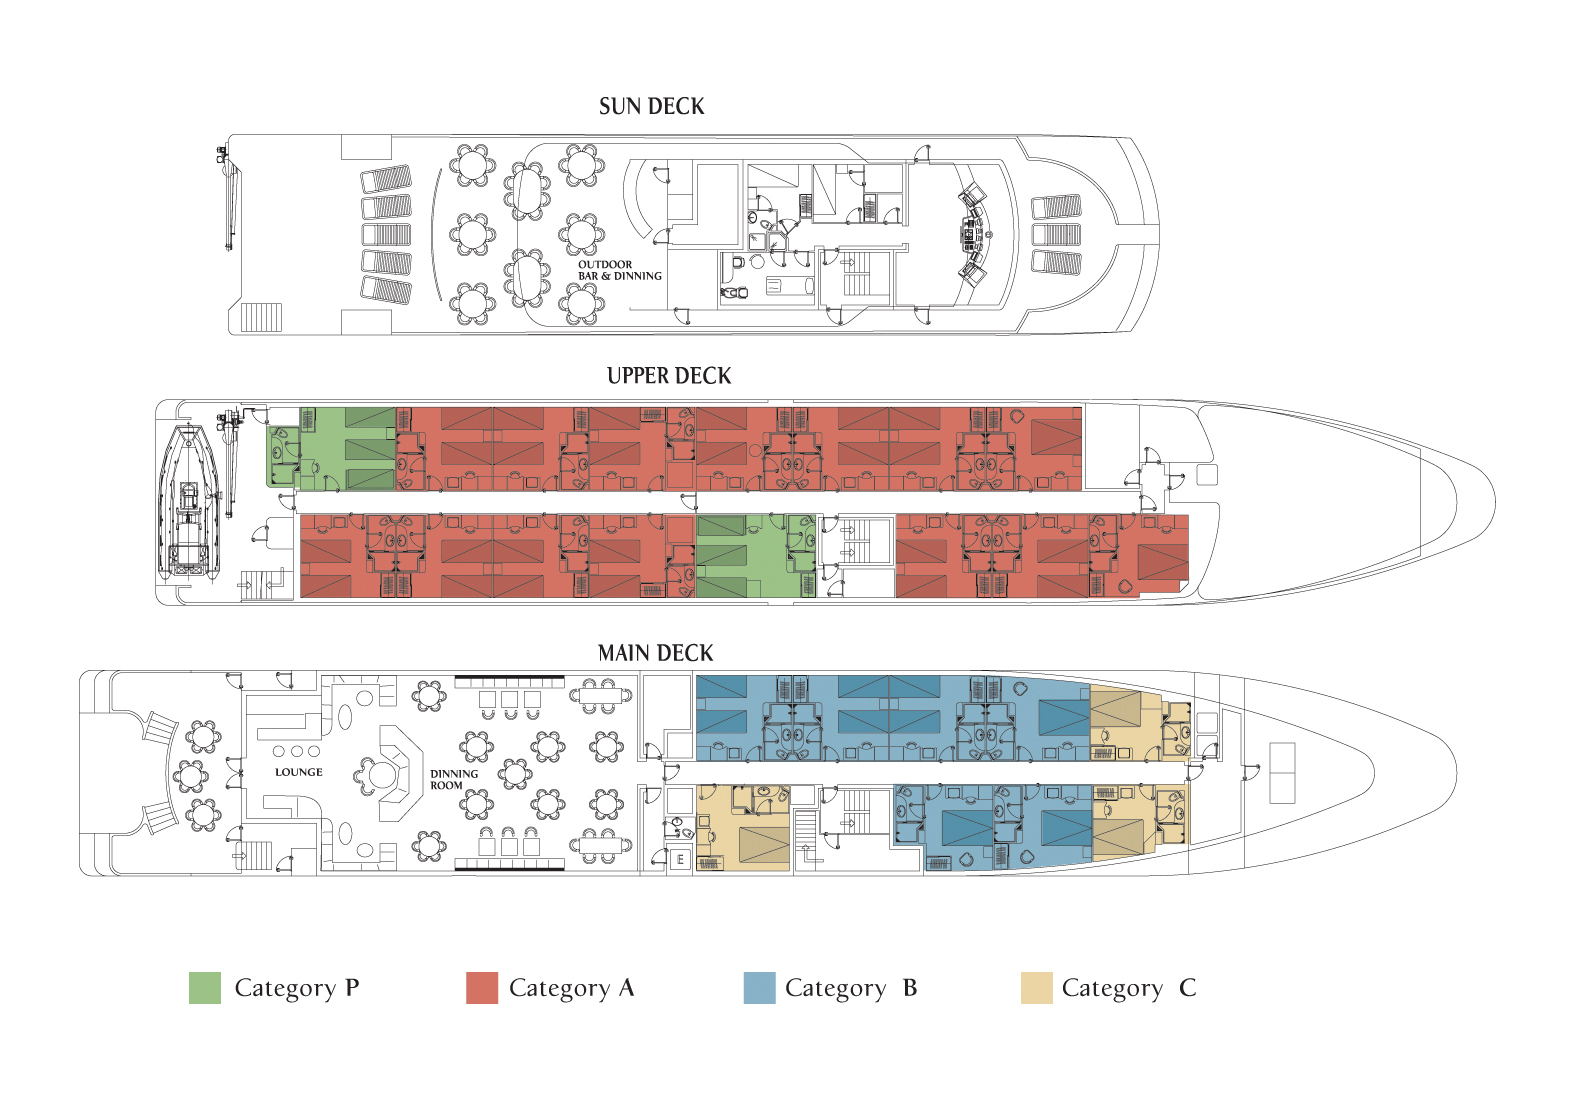 Cabin layout for Harmony V